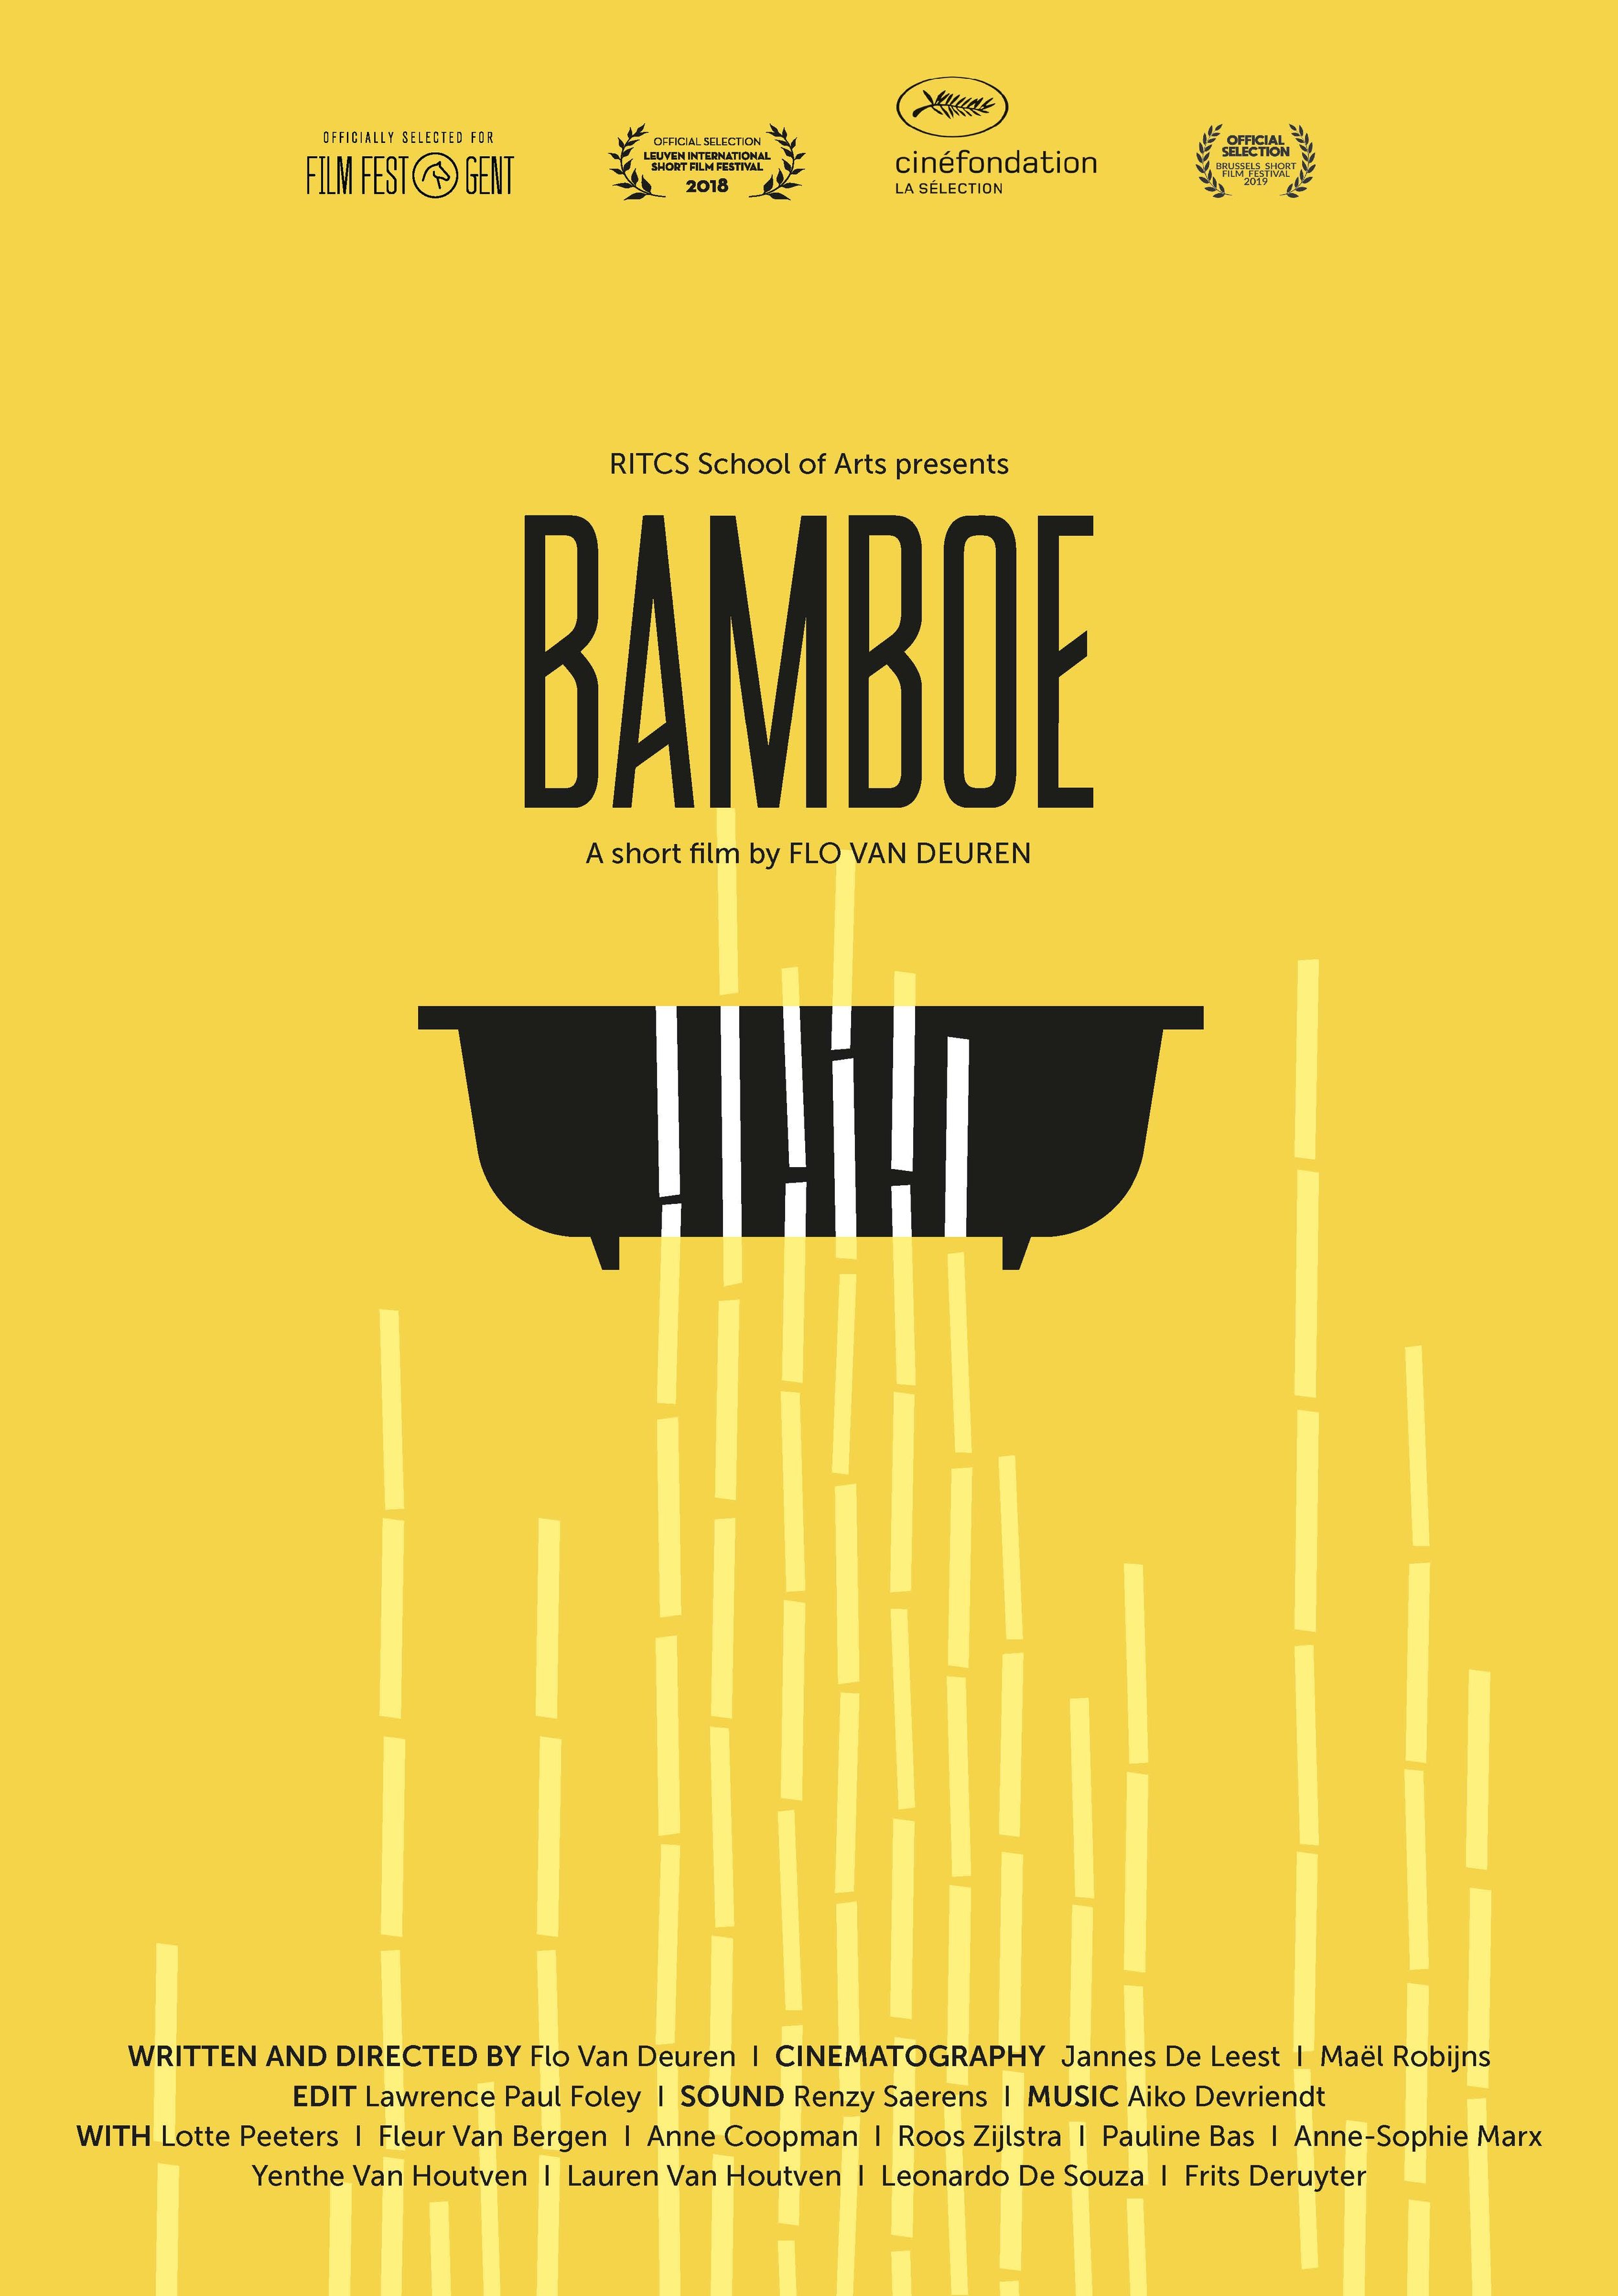 Bamboe poster - Artwork by Greet Lesage